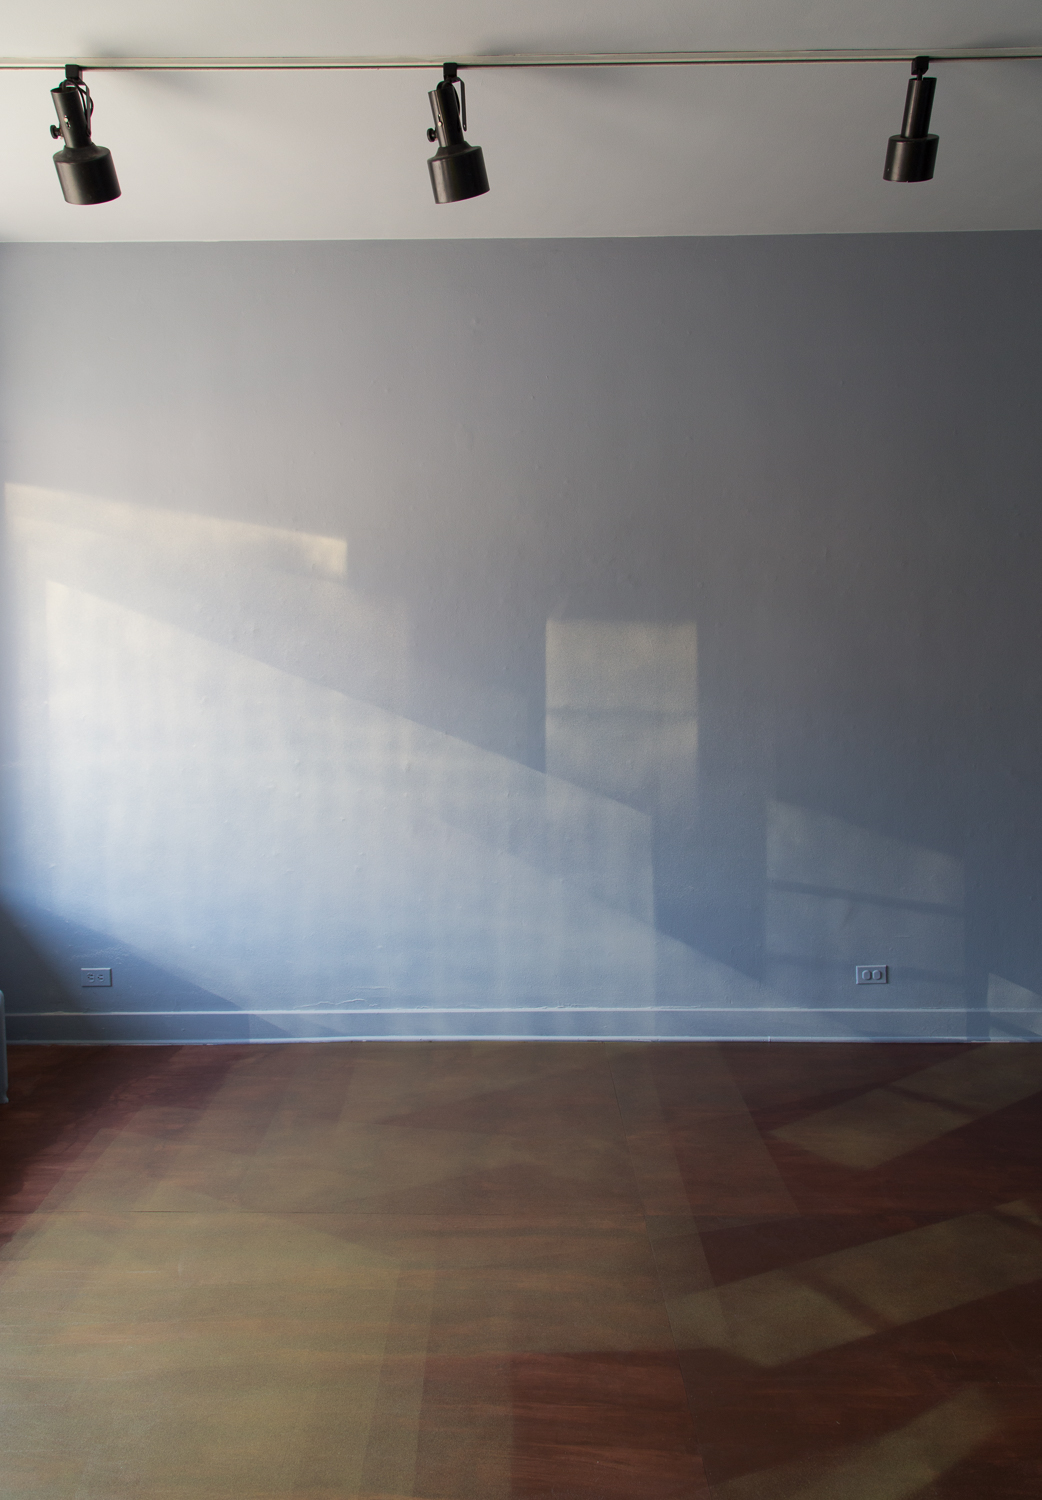 Paola Cabal, Crescent, 2015, interior latex and spray paint on walls, ceiling, and stained birch plywood floor panels overlaid on existing floor, wall height 10 feet 11 inches